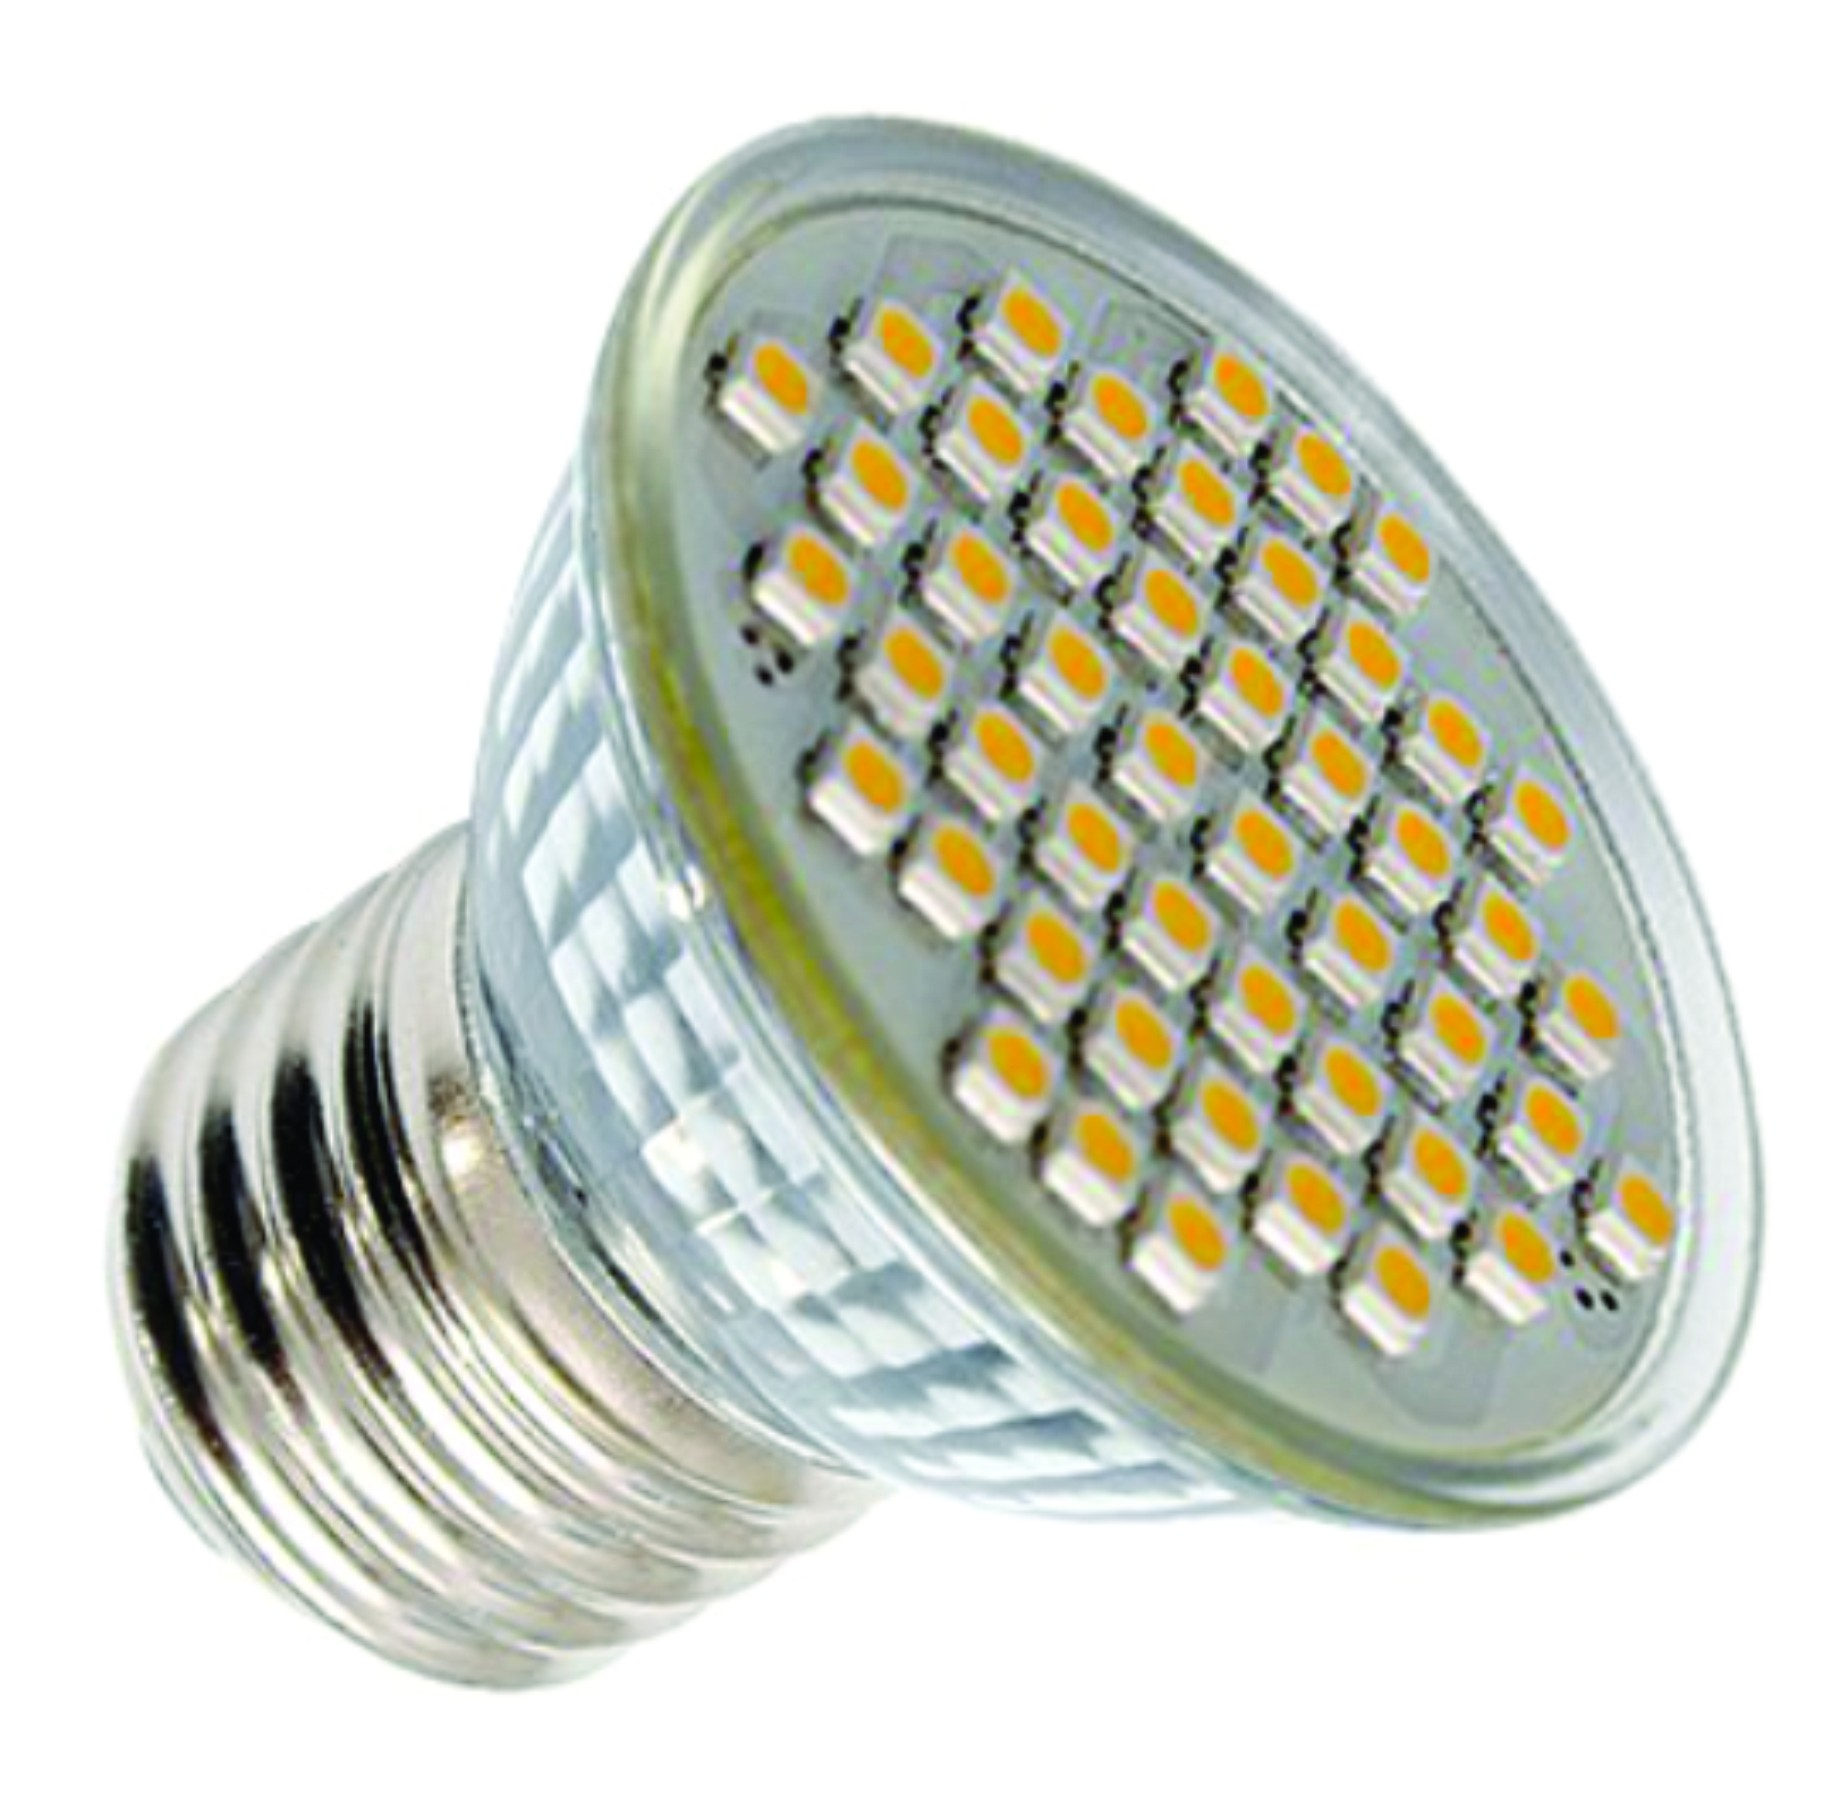 Lamparas Led 220 Luz De 48 Led 220v E27 50hz Bca Fri Lamparas